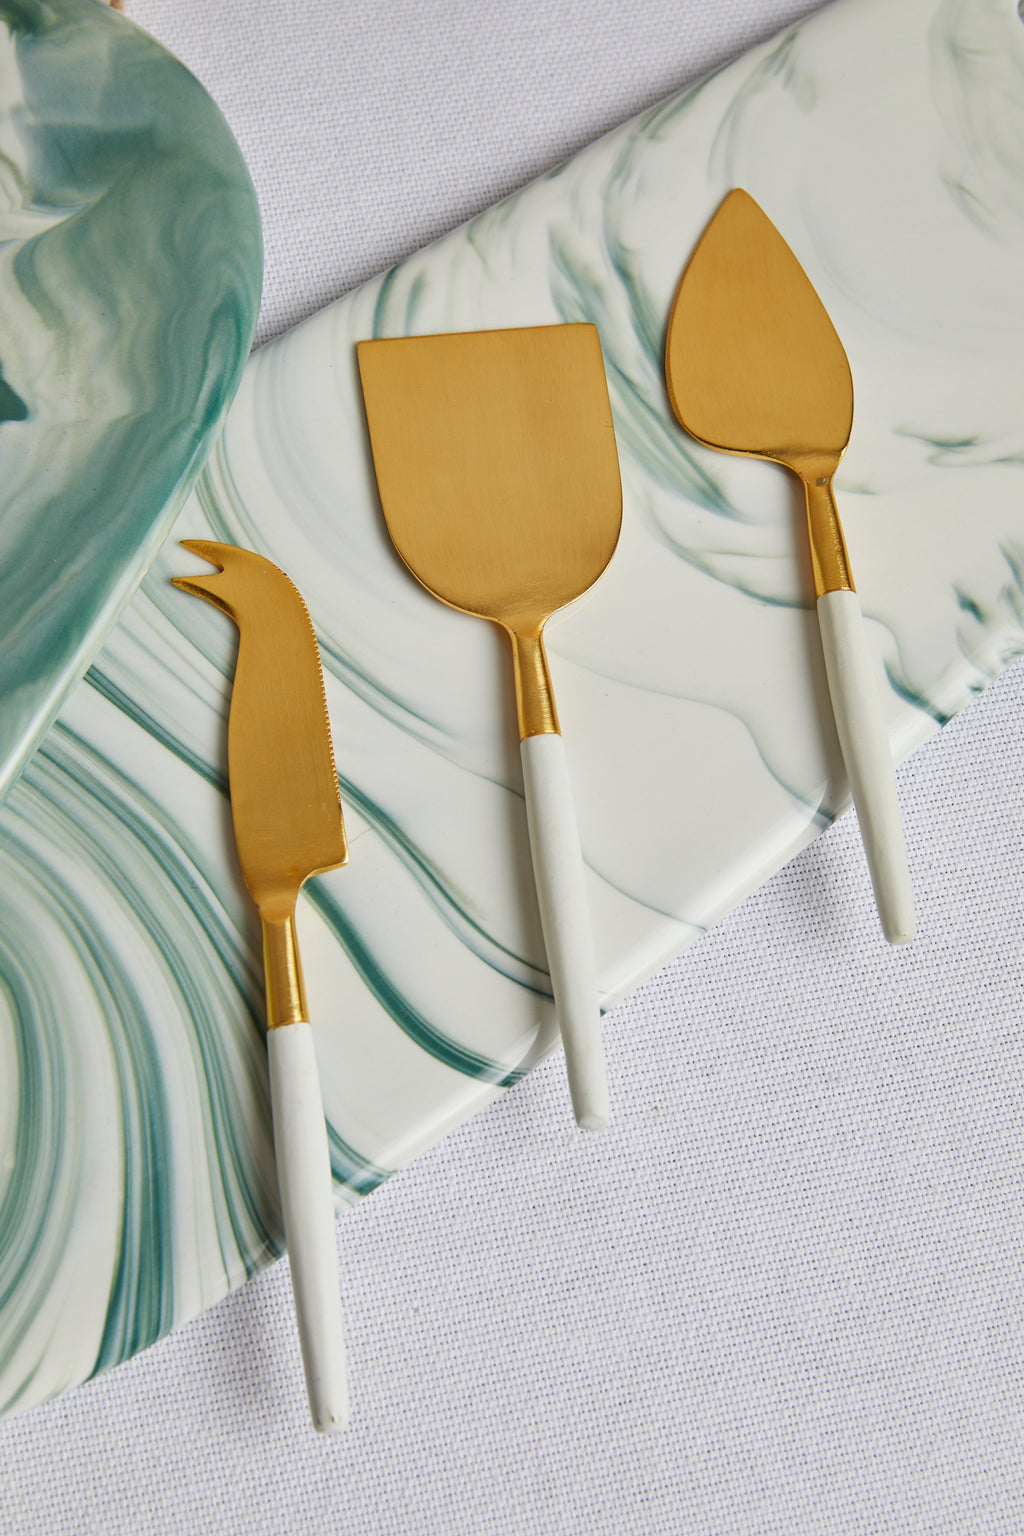 White and Gold Cheese Knife Set - P I C N I C